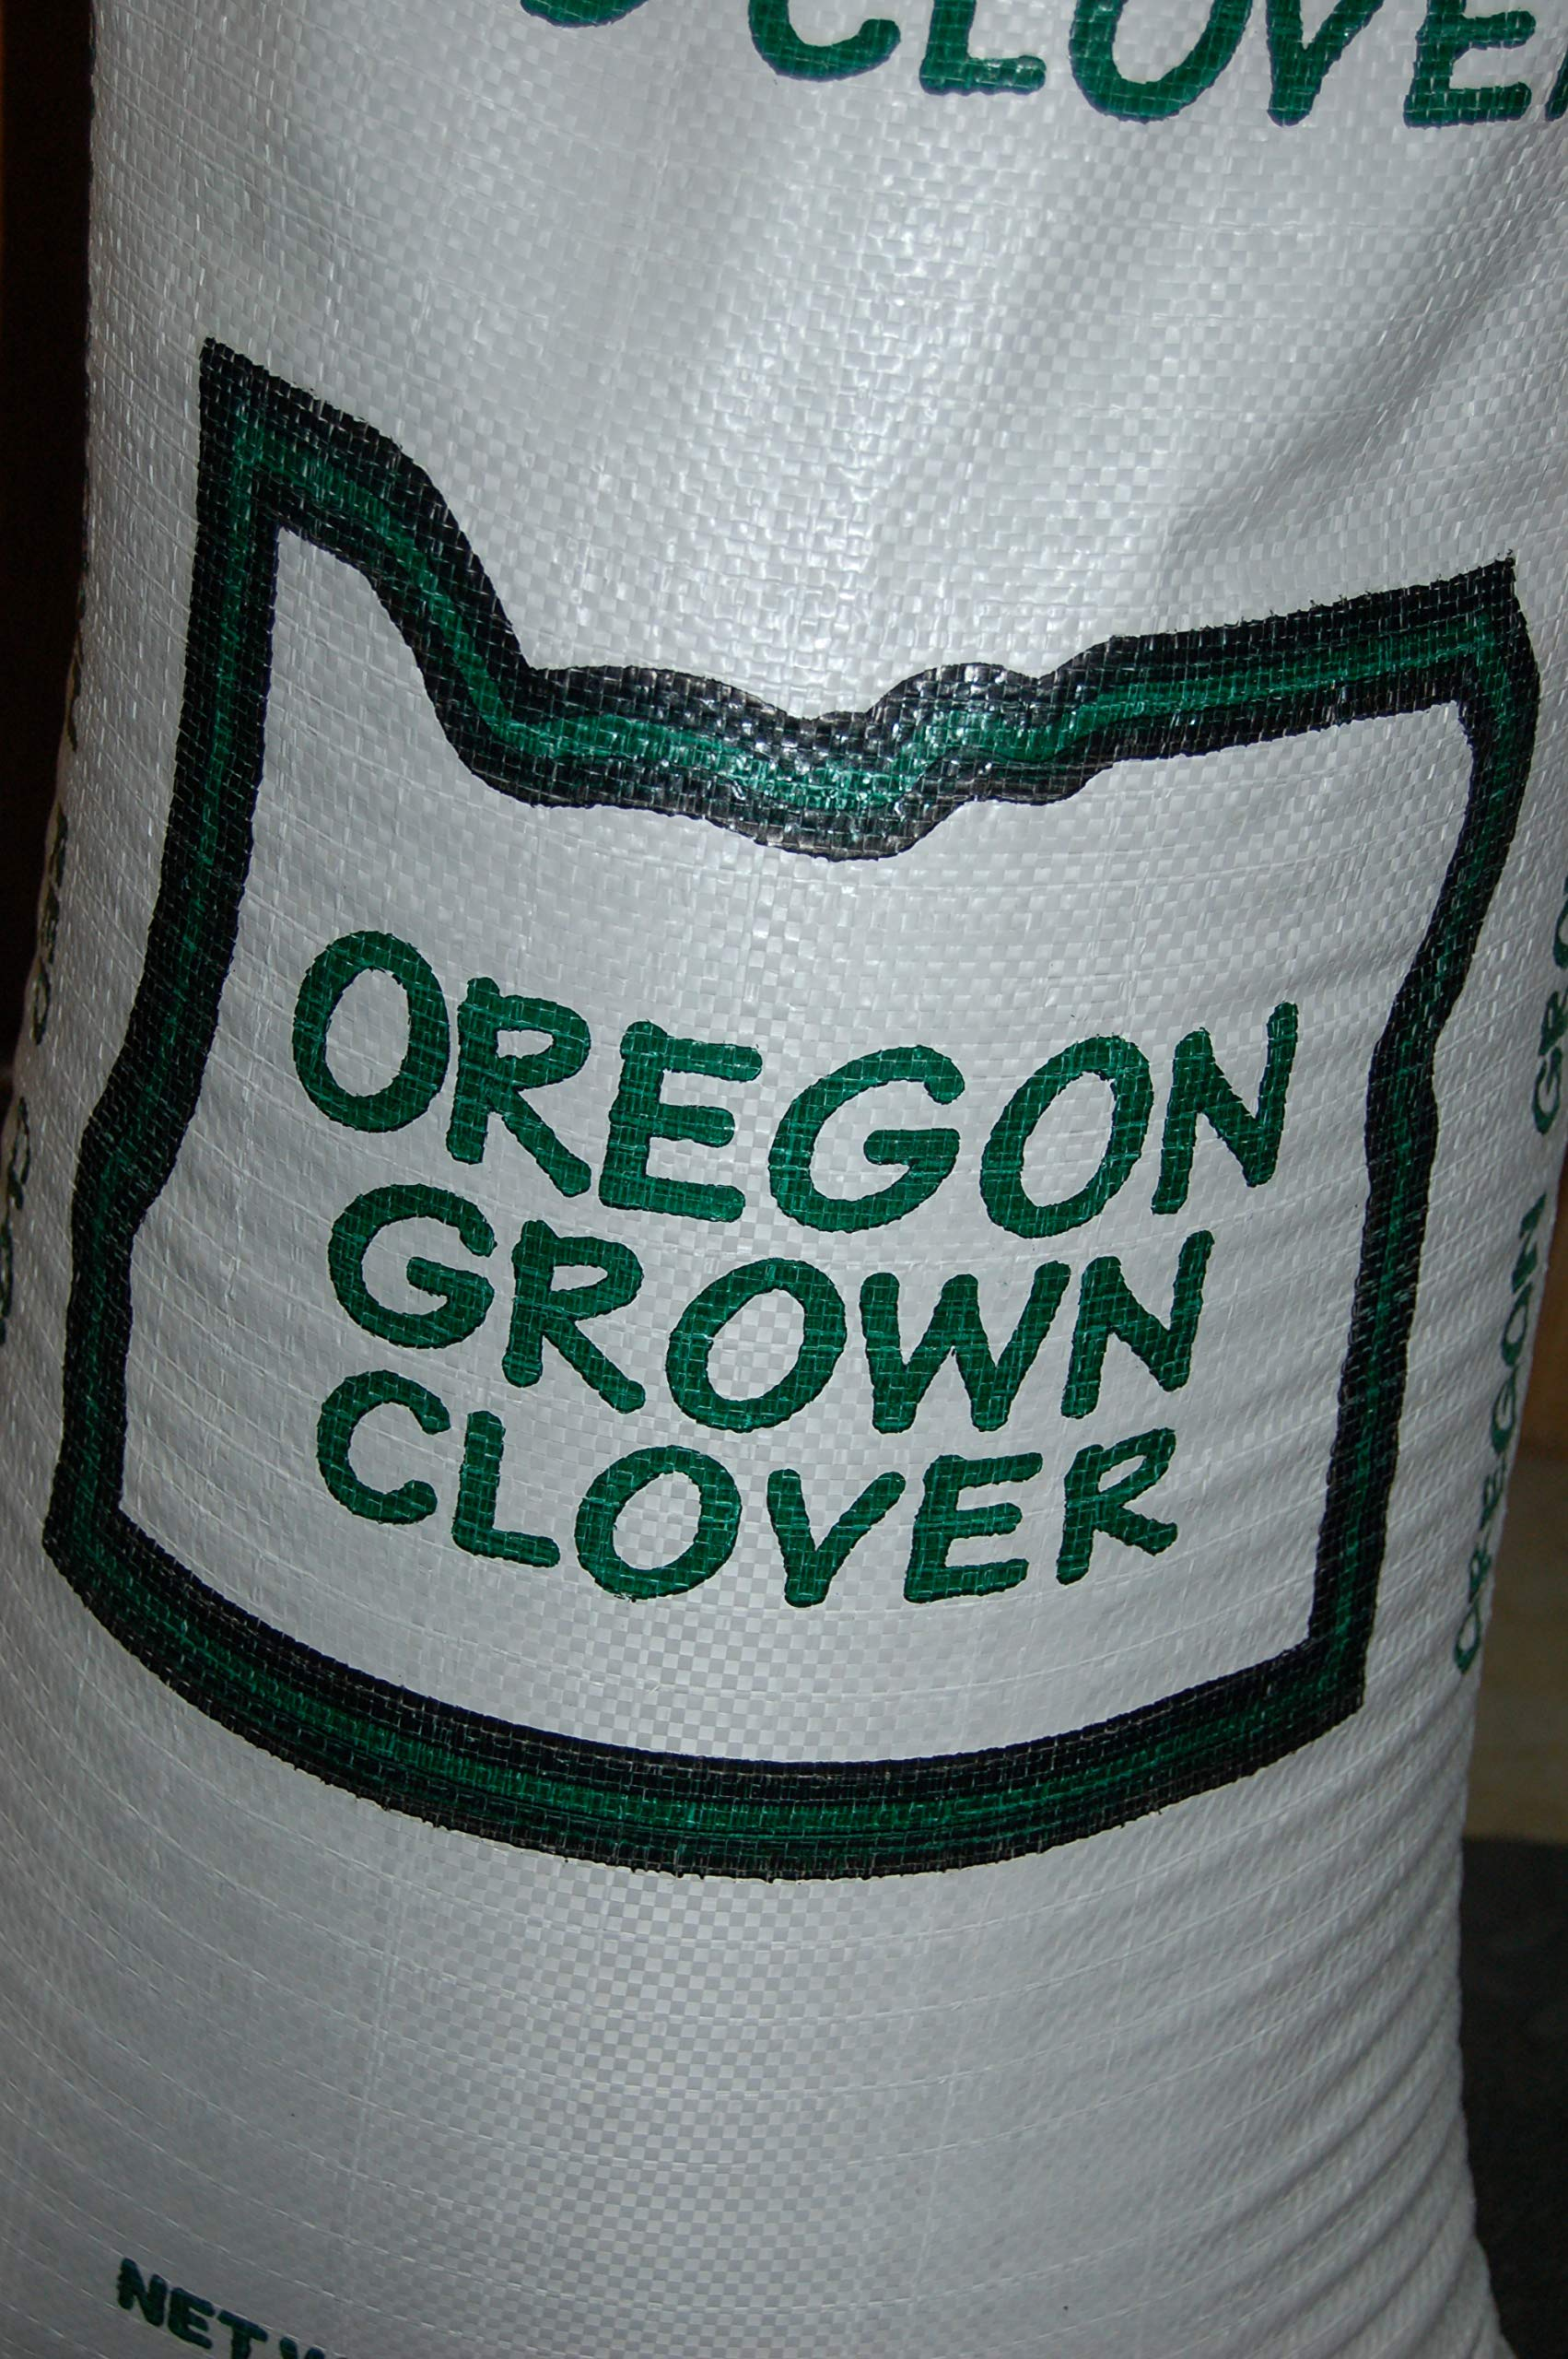 Red Clover Seed by Eretz - Willamette Valley, Oregon Grown (10lbs) by Eretz (Image #1)